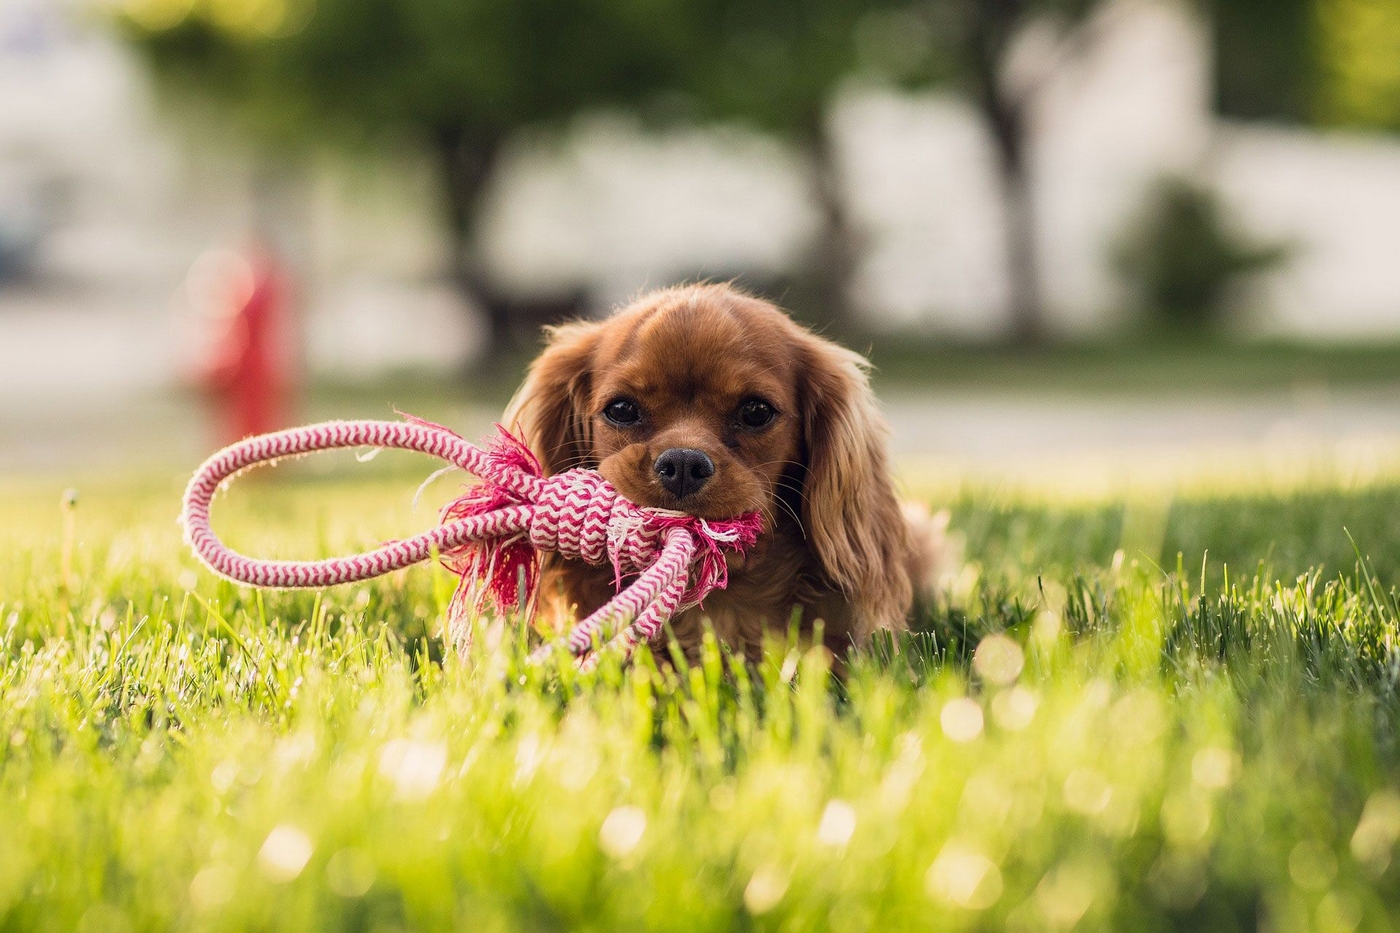 Image of a small dog chewing on a dog toy